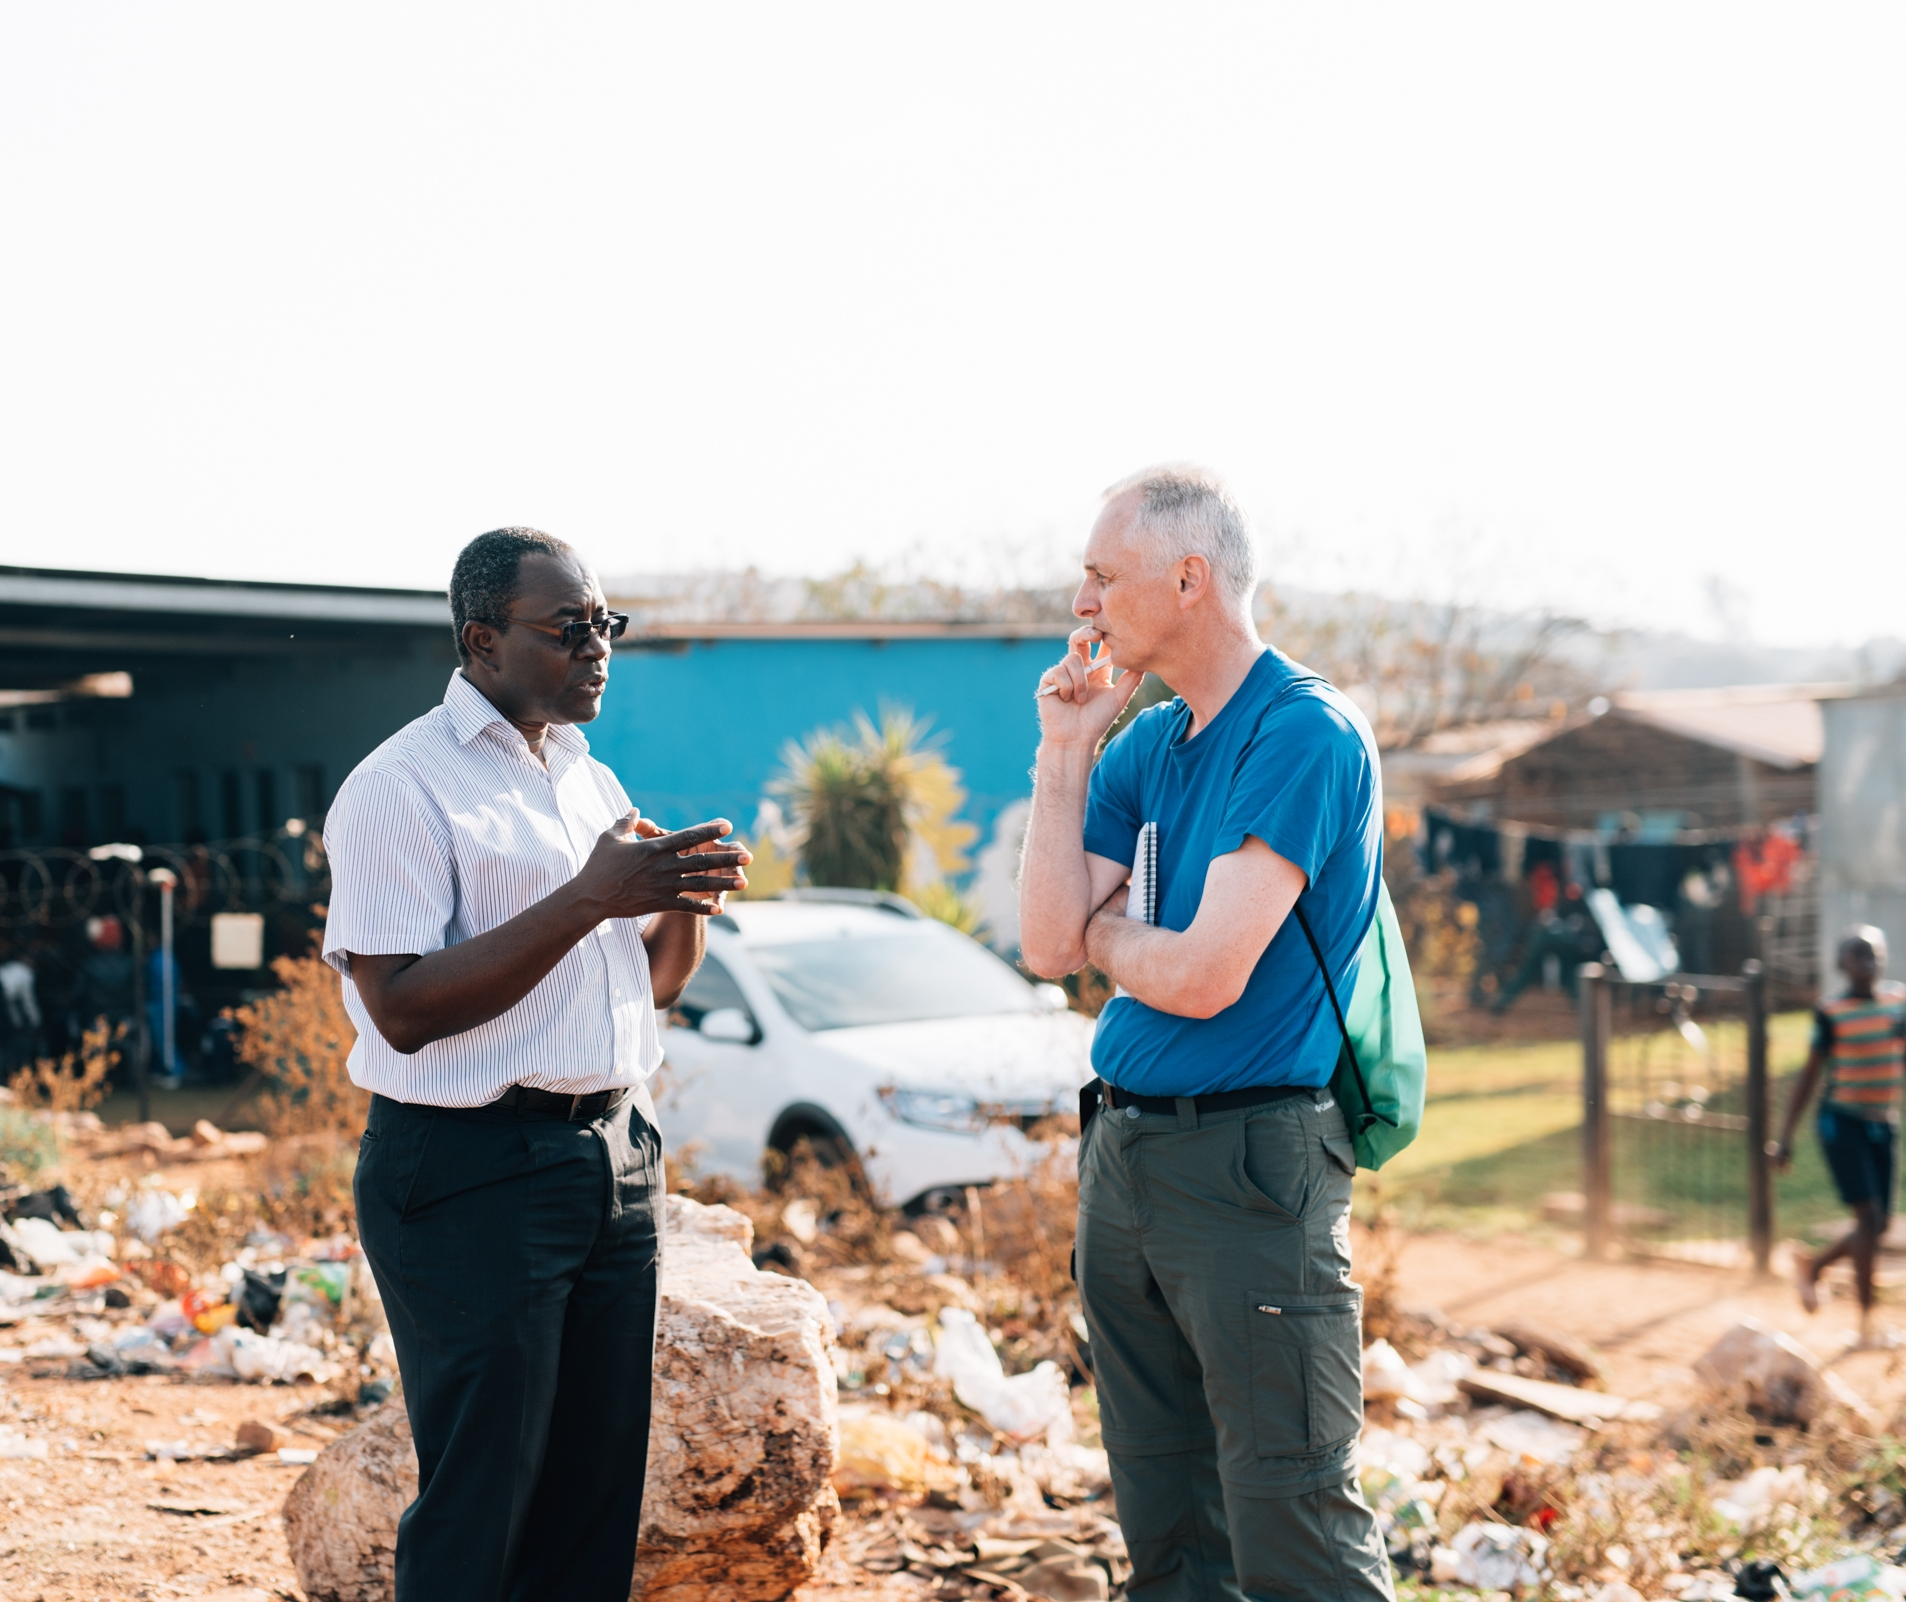 Rev. David Nixon - I spent 13 years in Zambia and in the second year, I founded and then continued developing Chodort Training Centre.  It was quite unbelievable all the obstacles and difficulties that we encountered all along the way, all of which convinced me that we were continually involved in a spiritual battle. My experience has taught me that our partners are facing this opposition all the time and I am impressed at how they keep going.  I am also impressed at how they seek to draw out the knowledge and skills in the people they are working with and build up their knowledge and skills to that people's confidence is strengthened and they become strong, resilient and better able to improve their own lives.  My highlights have been visiting our partners in Ghana & South Africa.  It was absolutely wonderful to meet enthusiastic and energetic people like Bernard Botwe; the administrator in Wenchi Hospital and Joseph Donkoh who has such a passion for extending the Kingdom of God through evangelism combined with practical development.  In South Africa I was so inspired by our partners; Thokozani Poswa from Phakamisa, Graham Philpott, David Ntseng, Nomusa Sokhela from Church Land Programme and the staff and volunteers in OSWW.  I often refer to these people as 'Giants', not in size but giant faith, passion, enthusiasm, love and compassion for their brothers and sisters.  They inspire me with their hearts for service.WDR Convenor since 2013